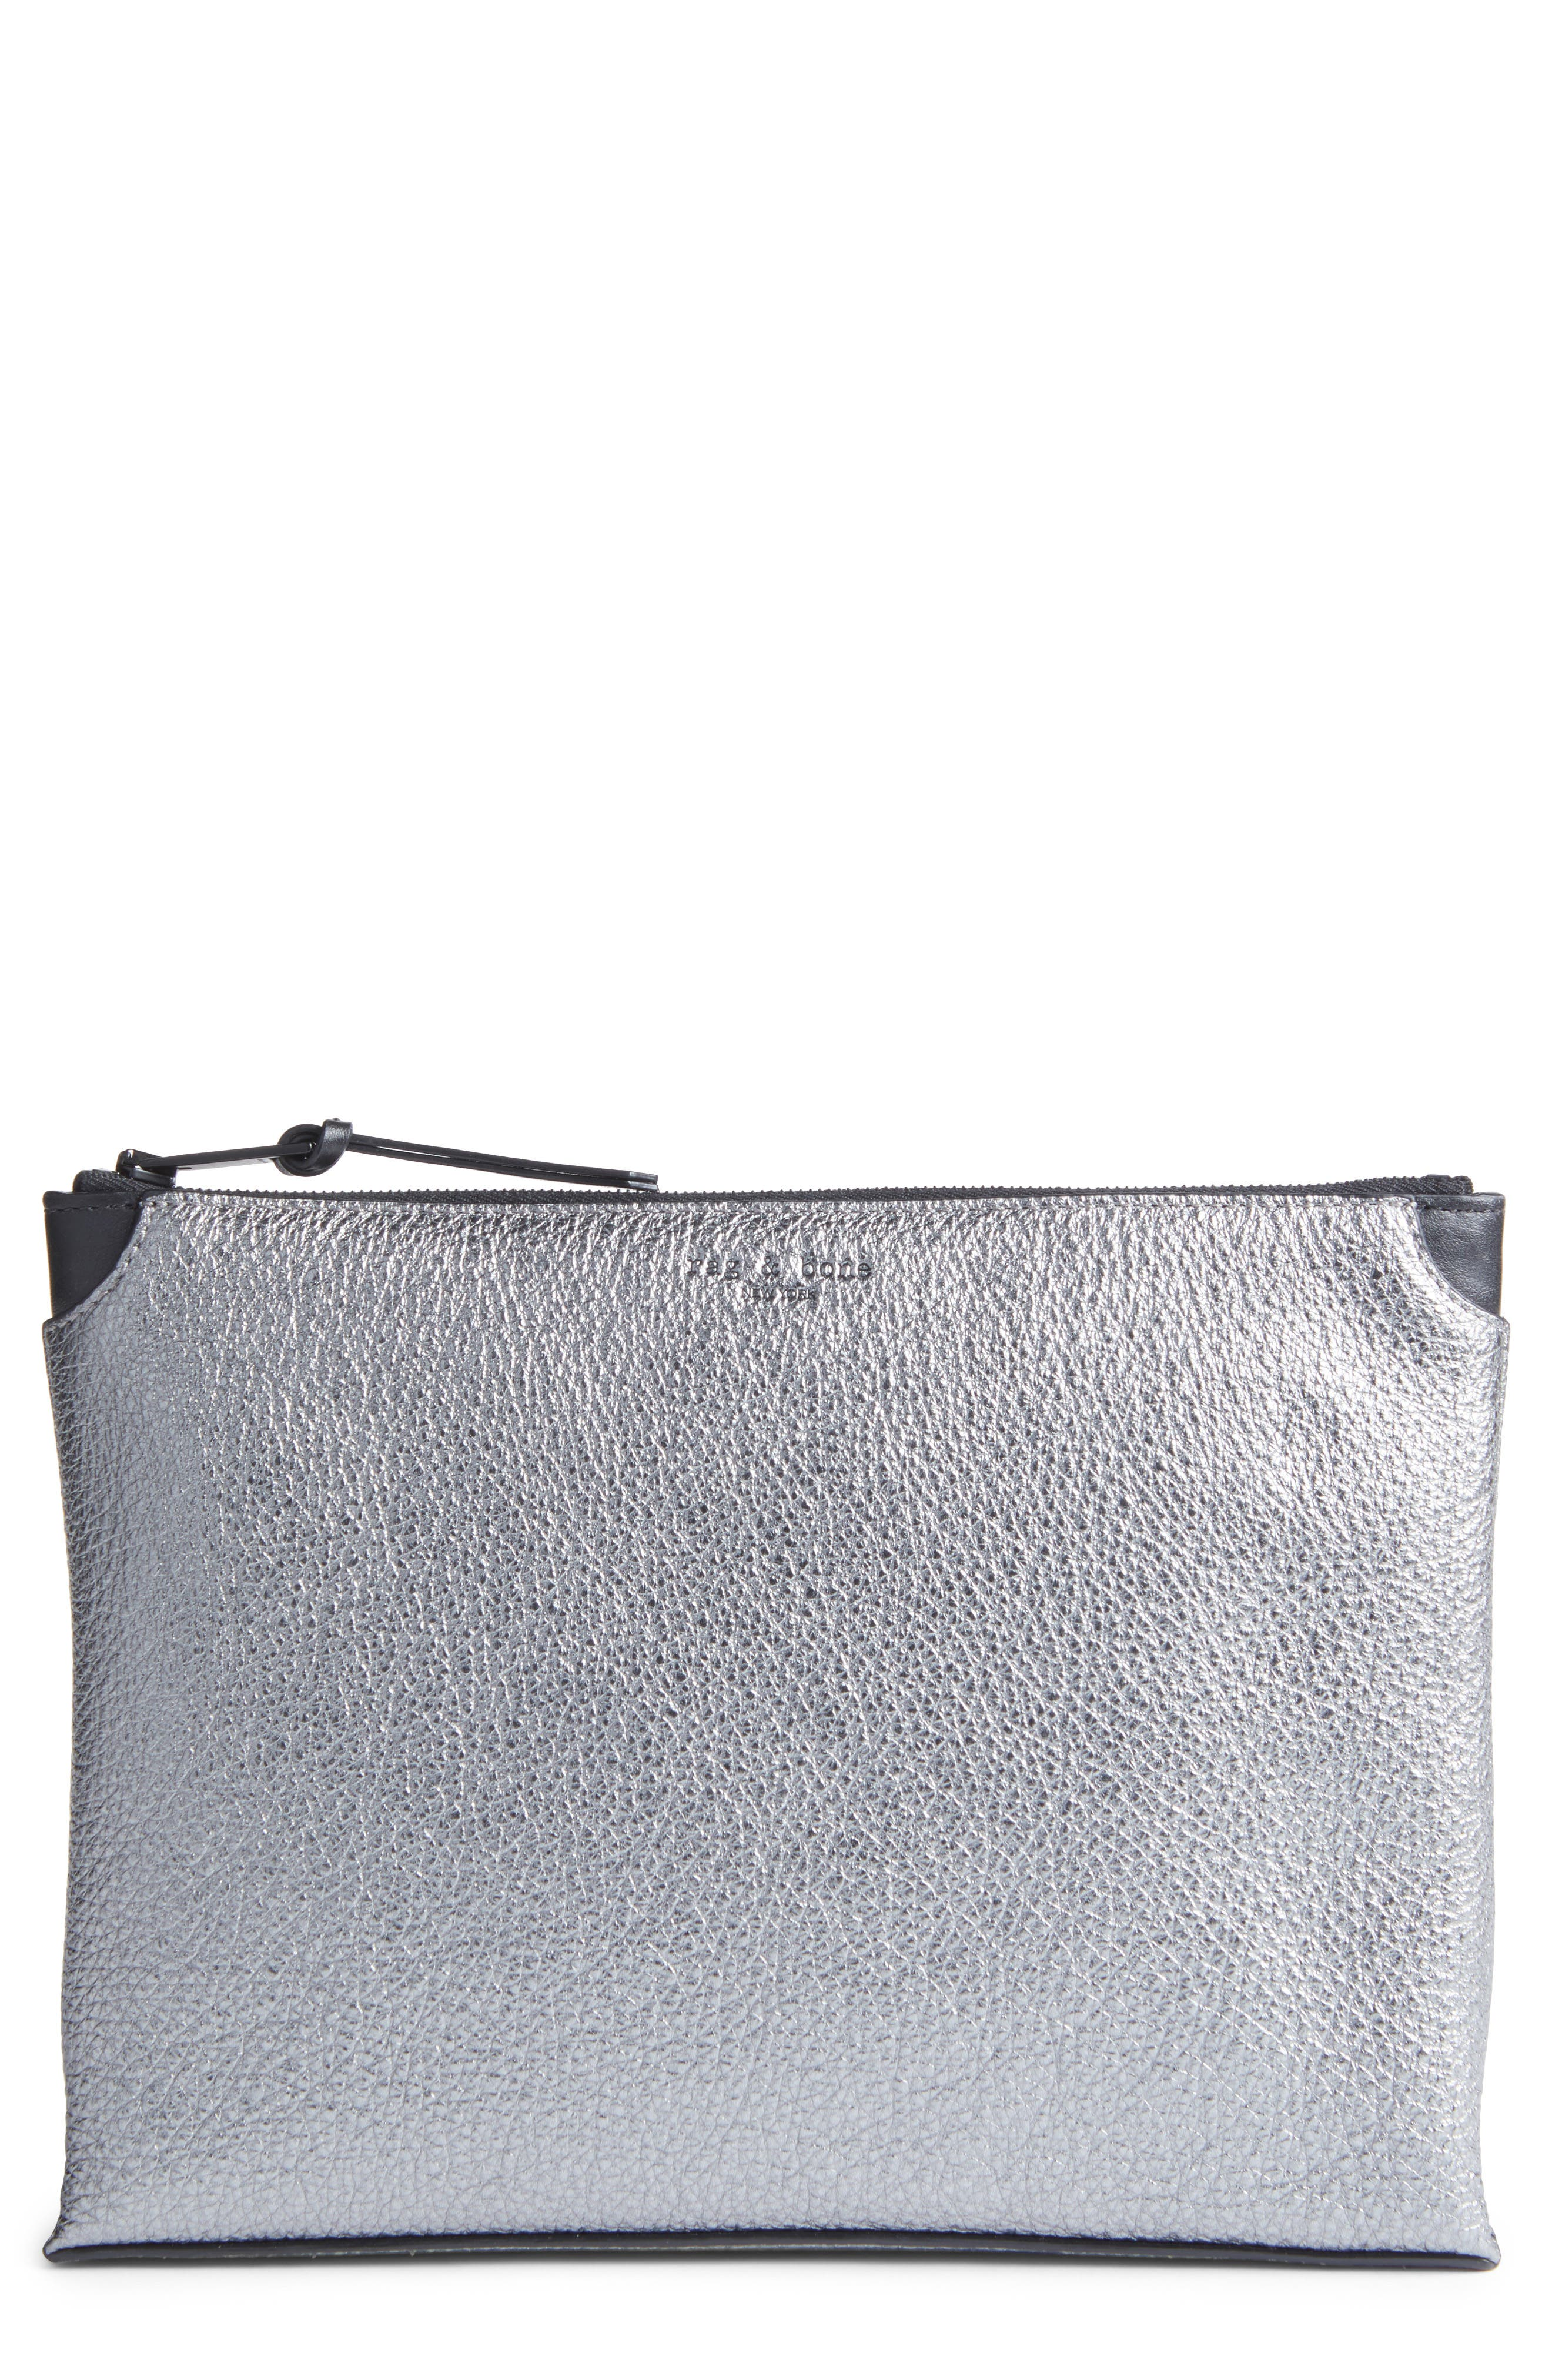 rag & bone Medium Buffalo Leather Pouch